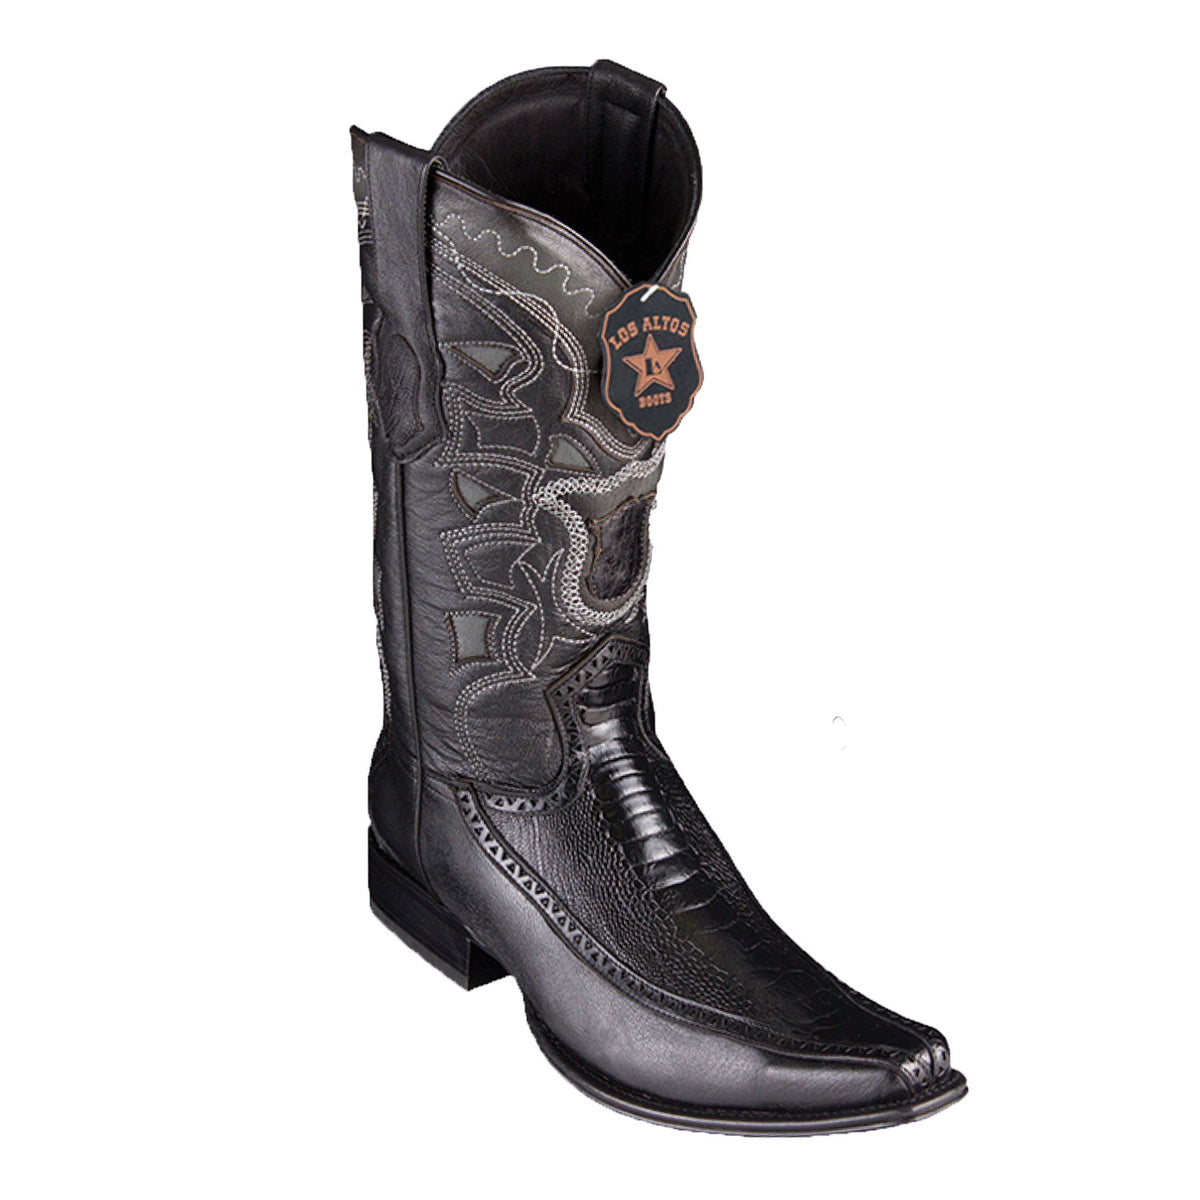 Ostrich Leg & Deer Skin Boot LAB-76F05